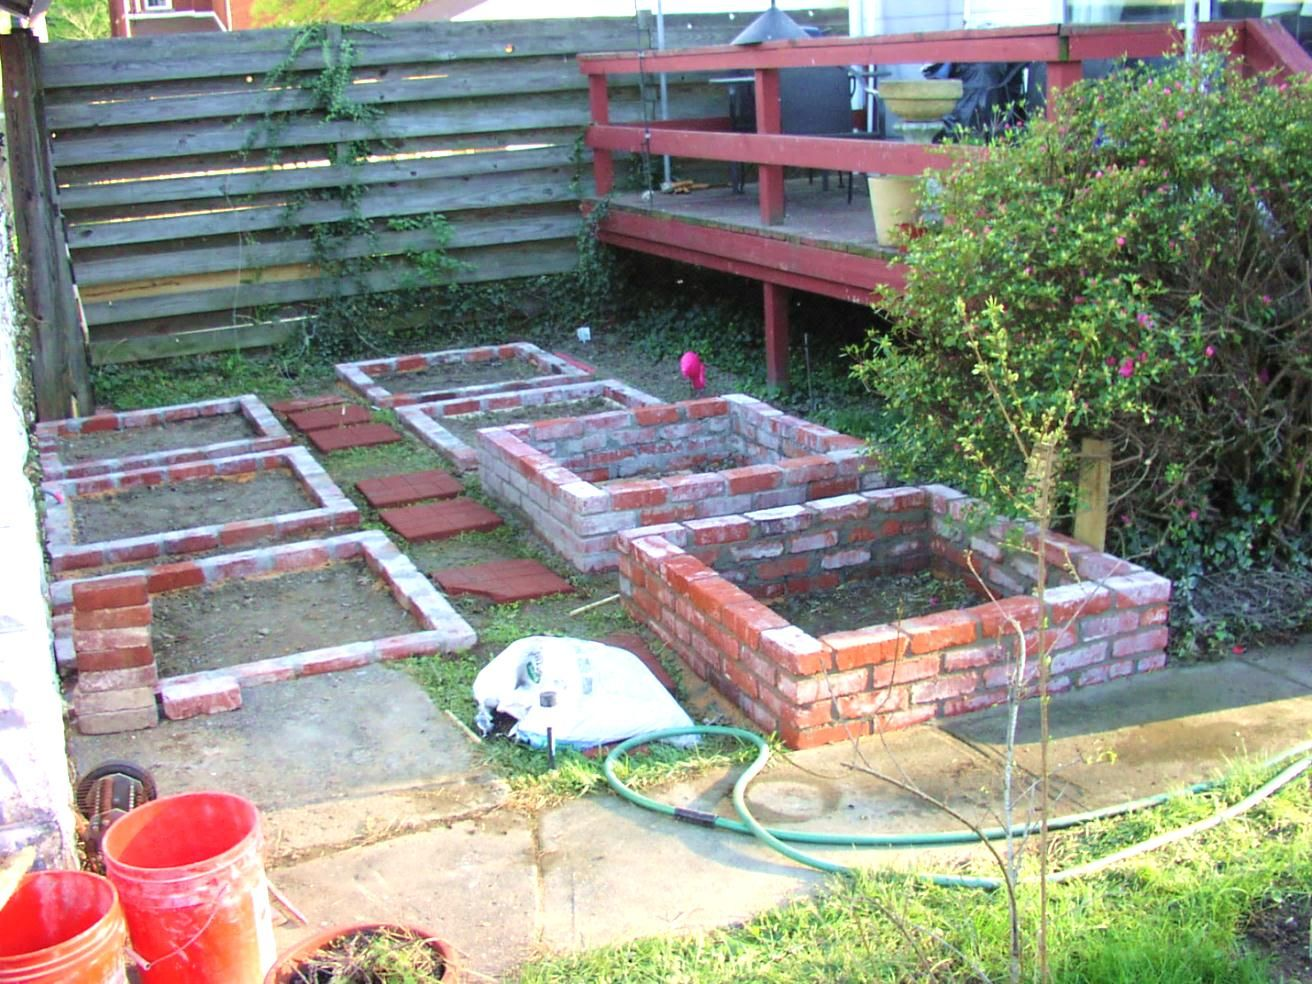 the making raised beds made from the recycled bricks 2012 - Garden Ideas 2012